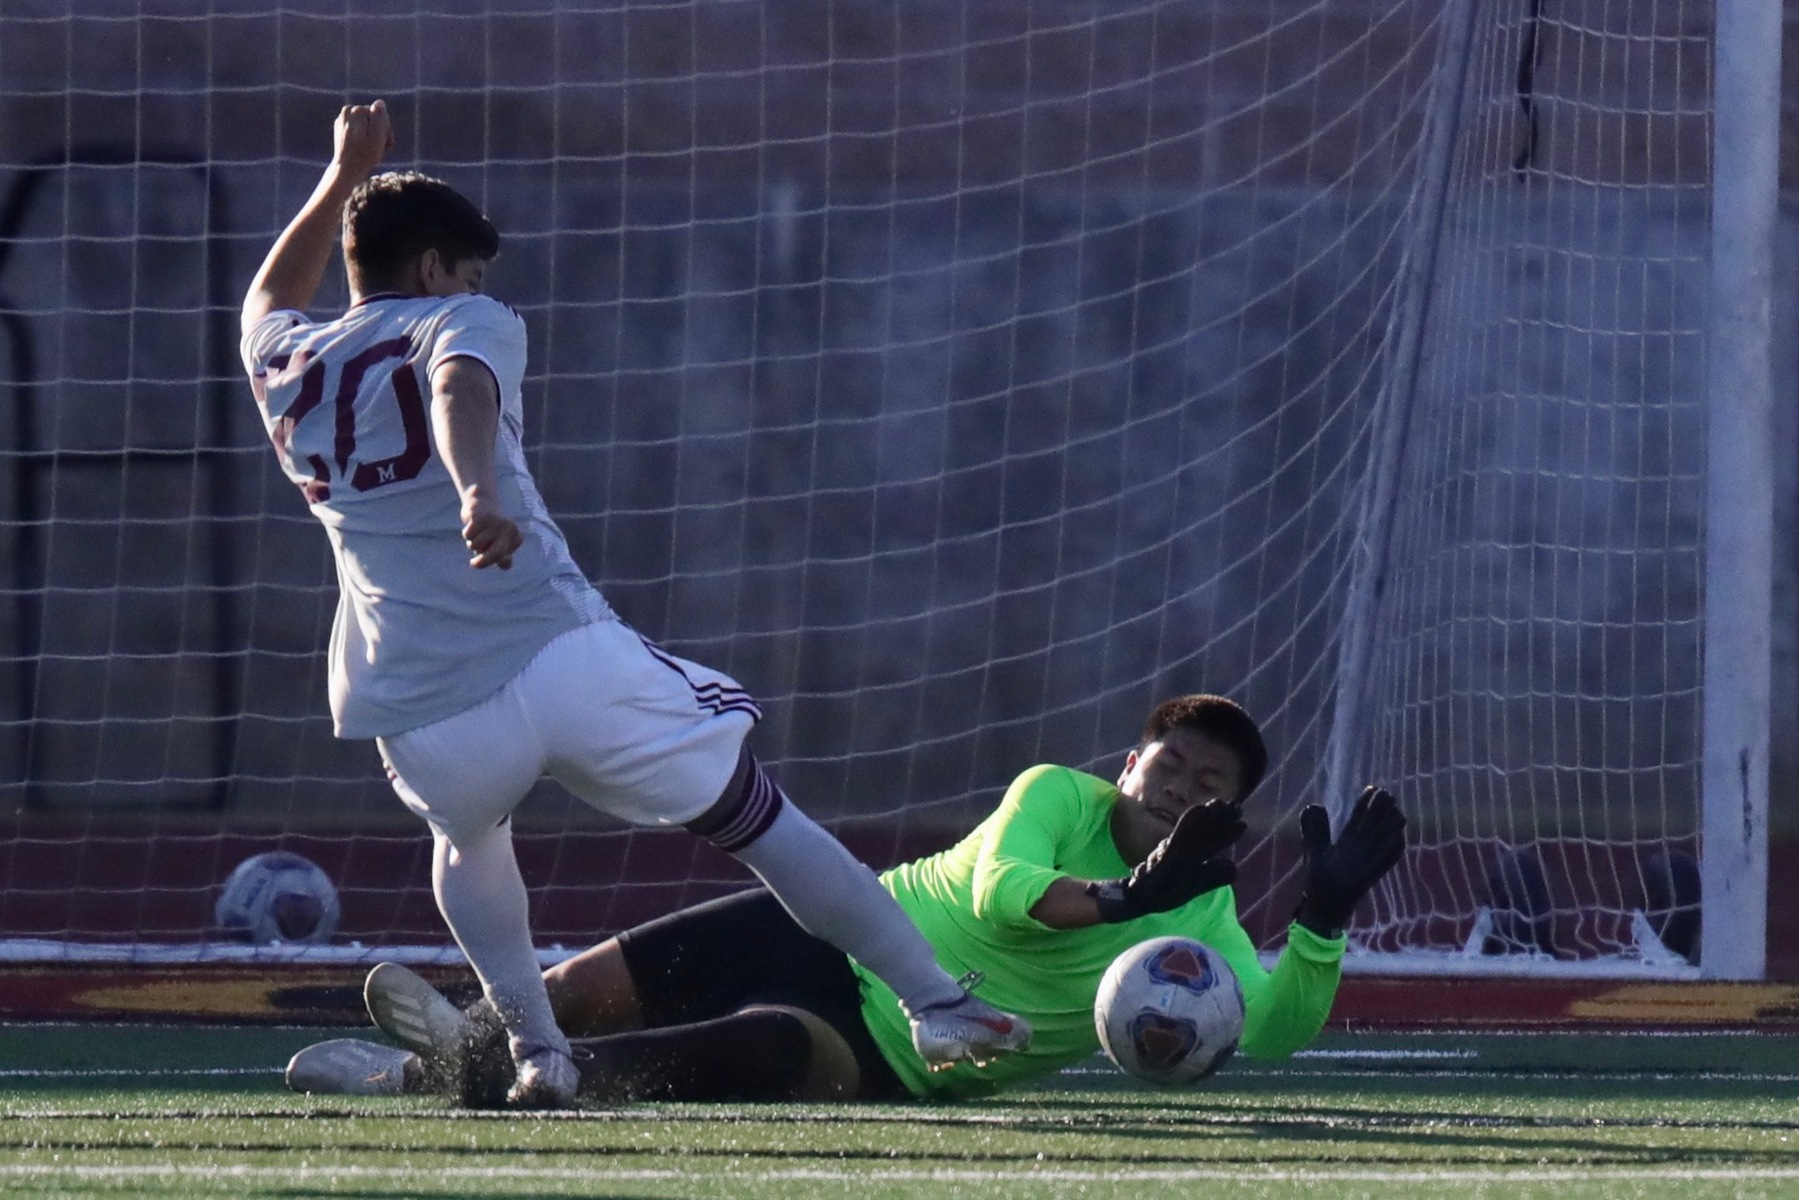 Lancer goalie Steven Sandoval goes down to make a save during PCC's loss to top-rated Mt. San Antonio Tuesday at Robinson Stadium, photo by Michael Watkins.